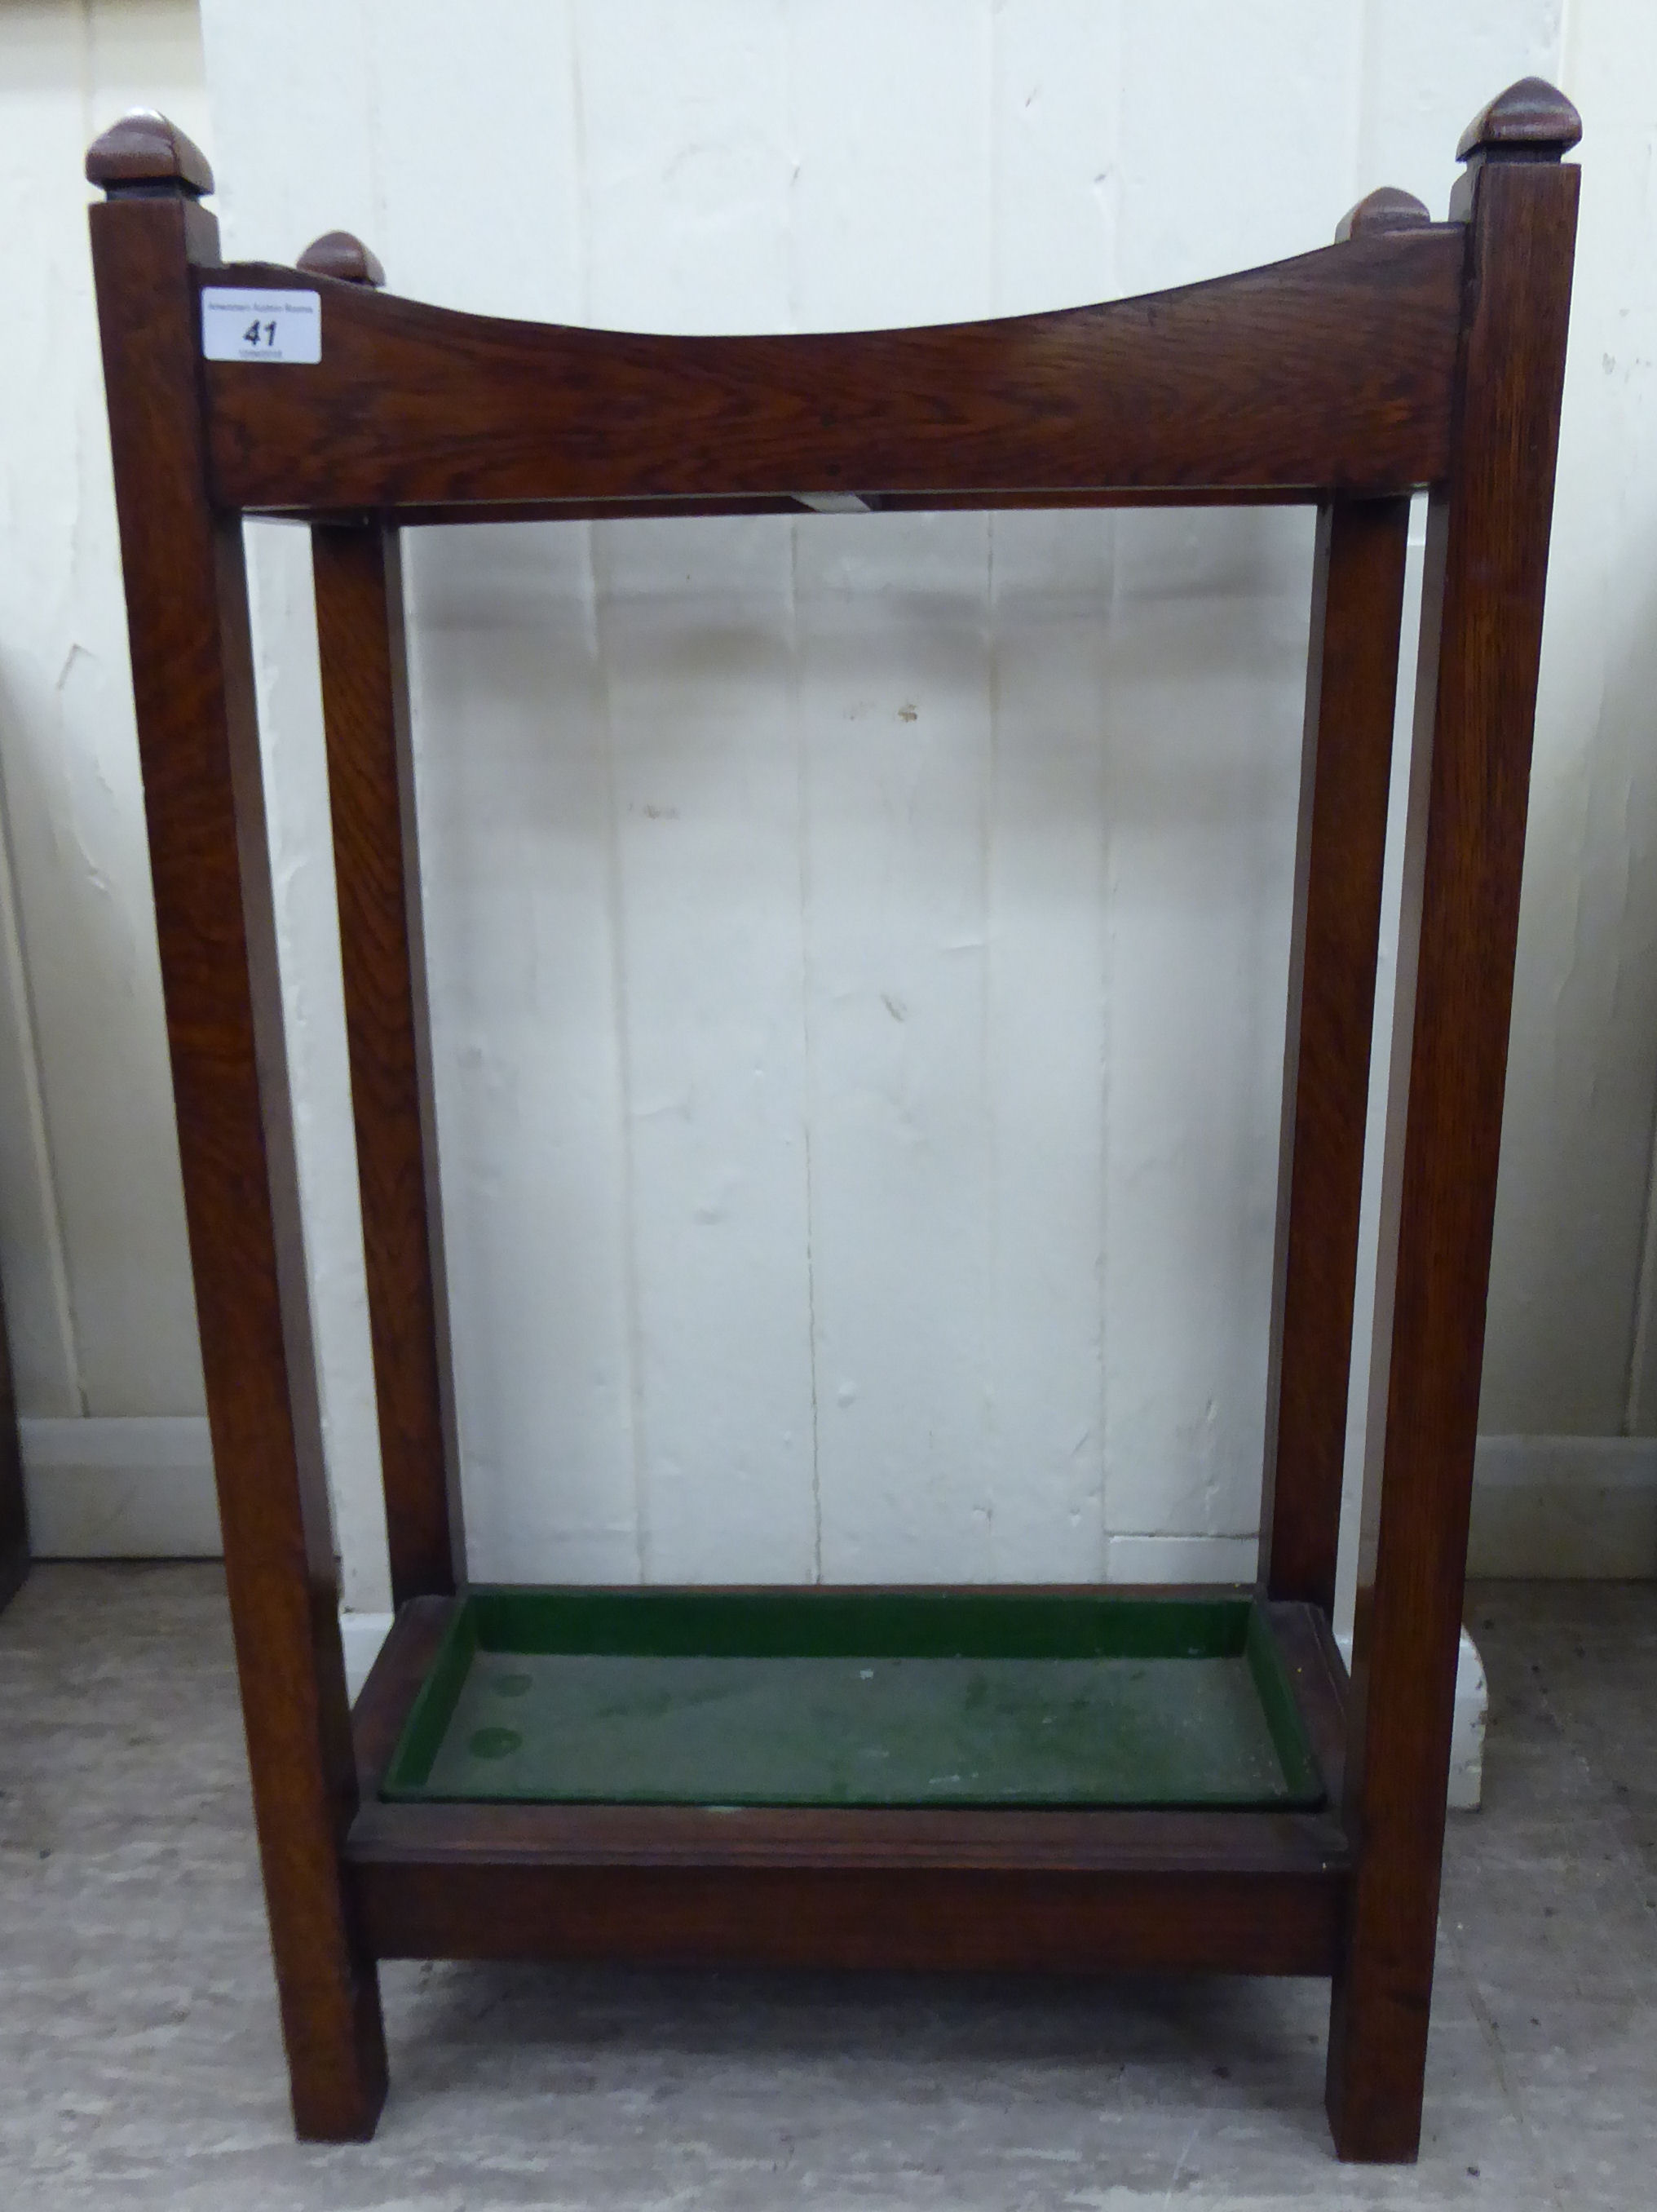 Lot 41 - A 1920s oak stickstand with a divided superstructure, on square supports,